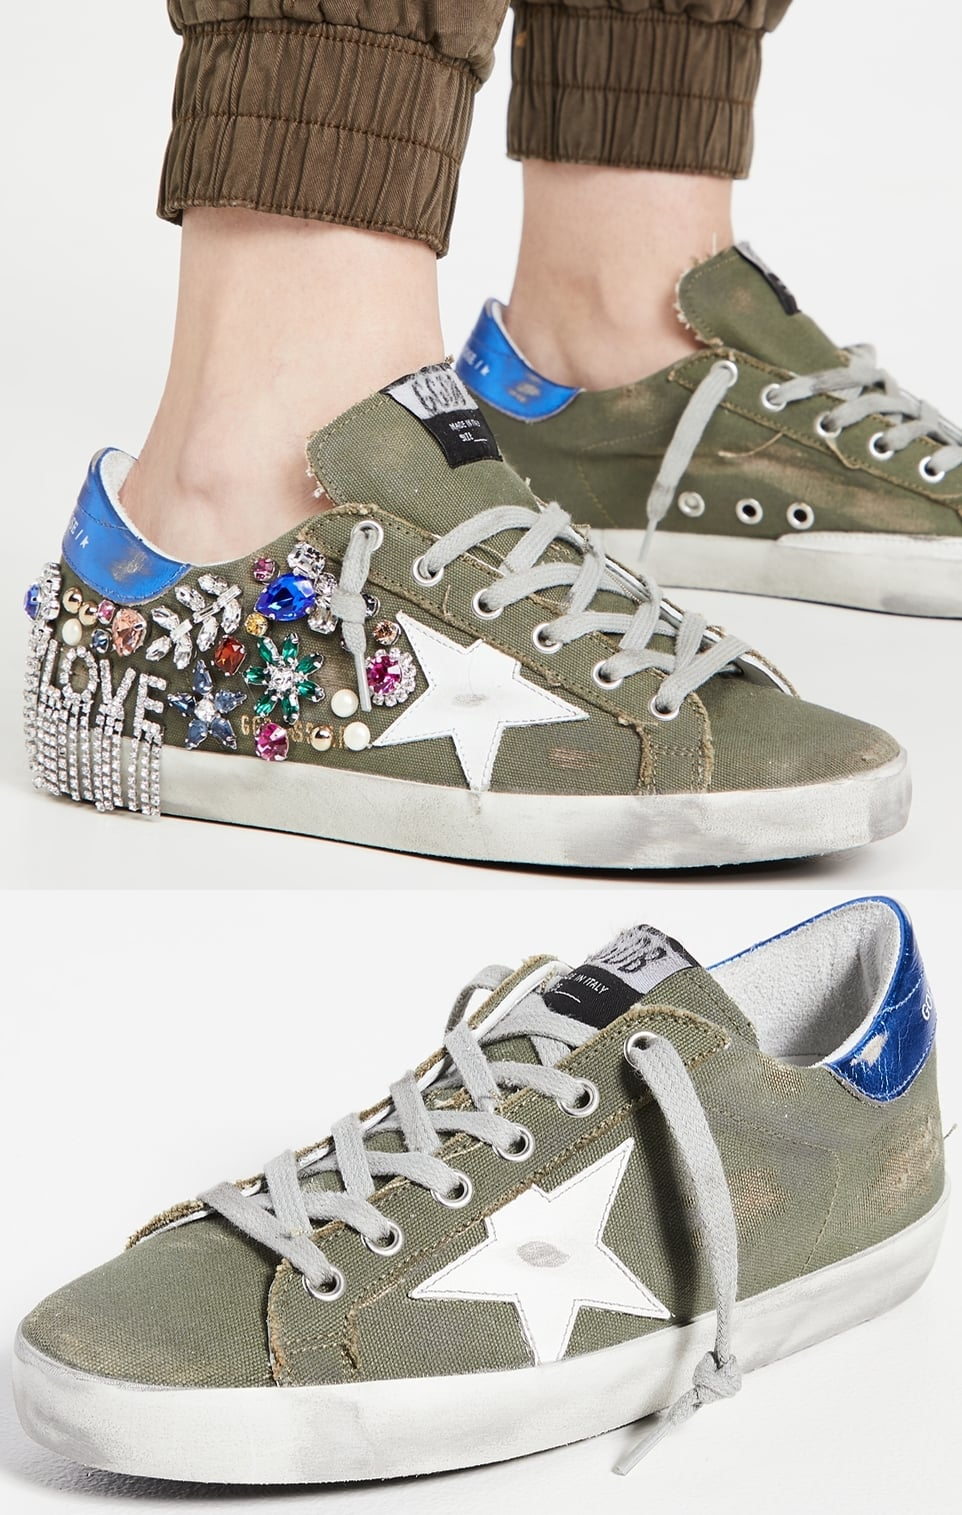 Green/white/blue sneakers with crystal detailing at one heel and scuffed, dirtied finish